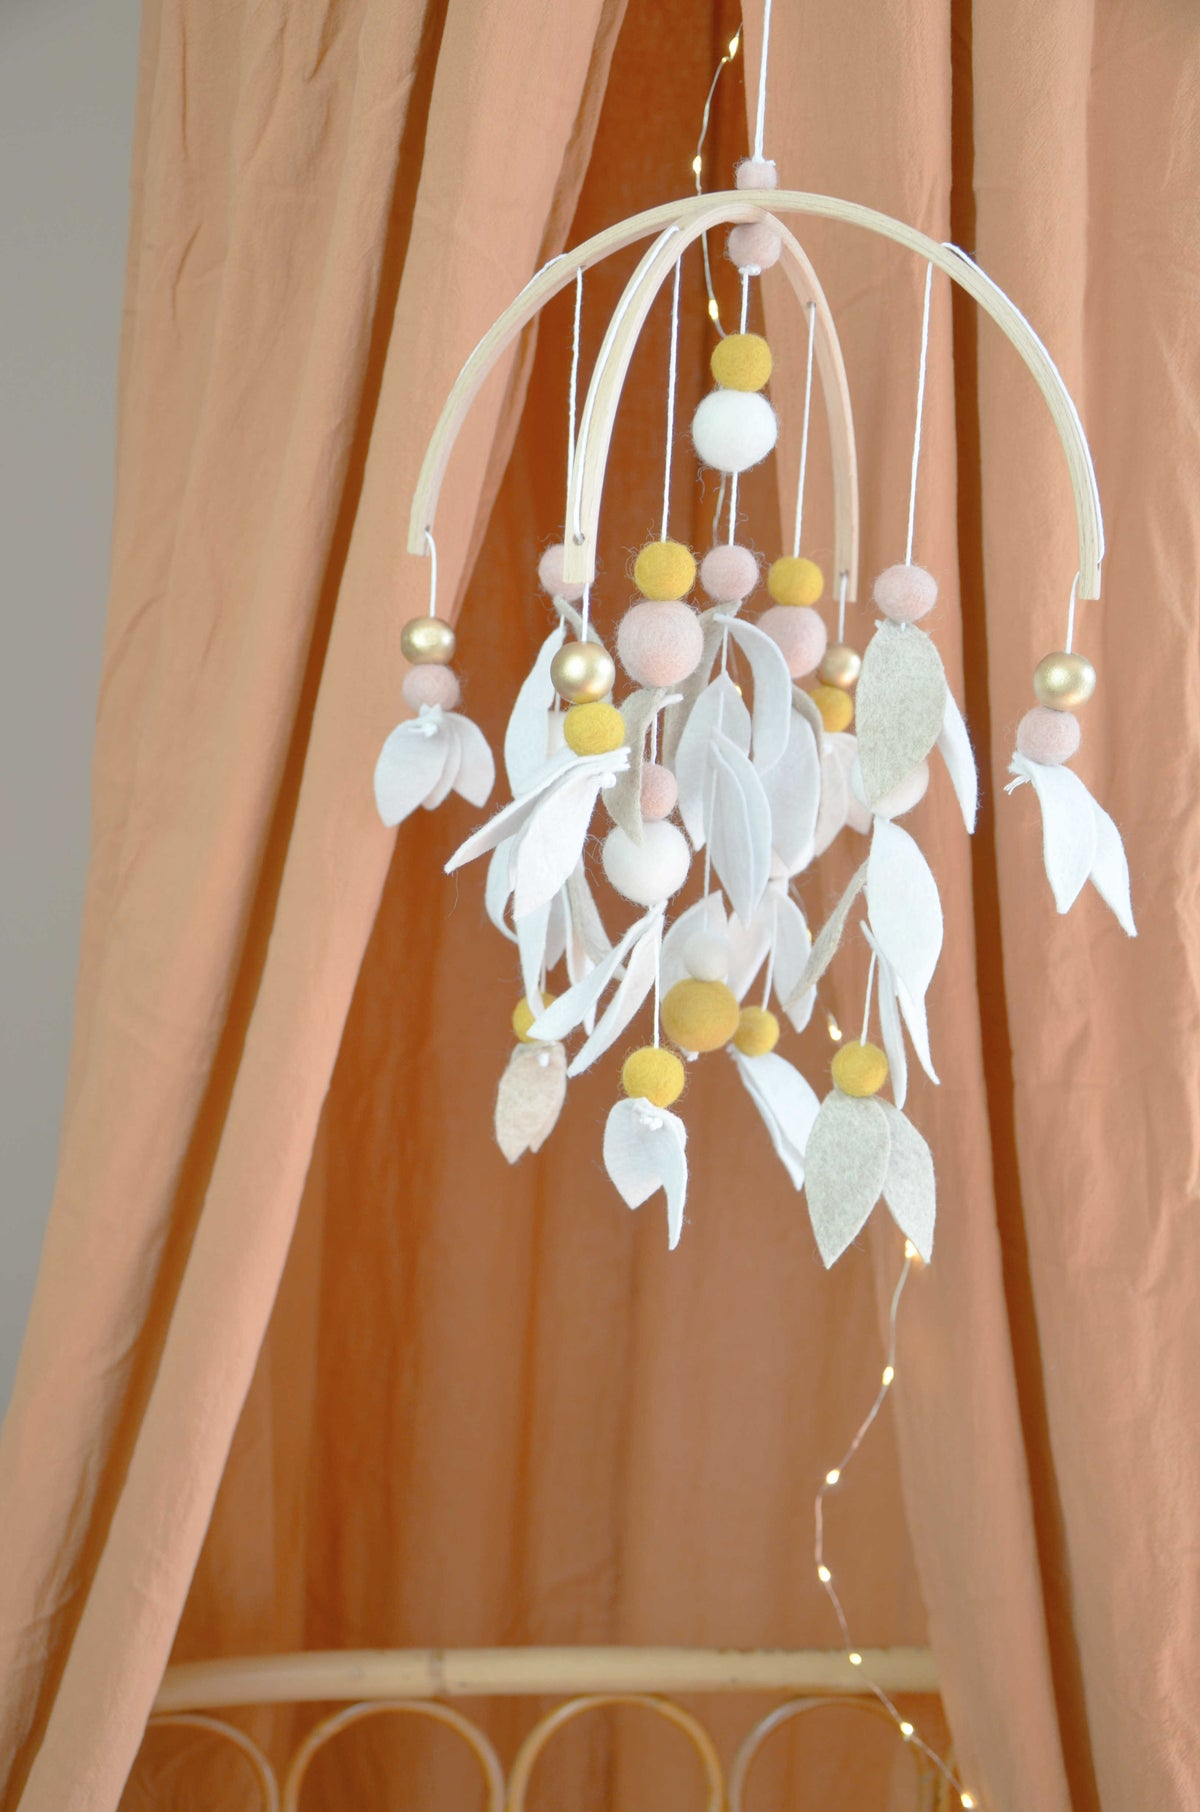 Image of Mobile feuillage beige clair, blanc